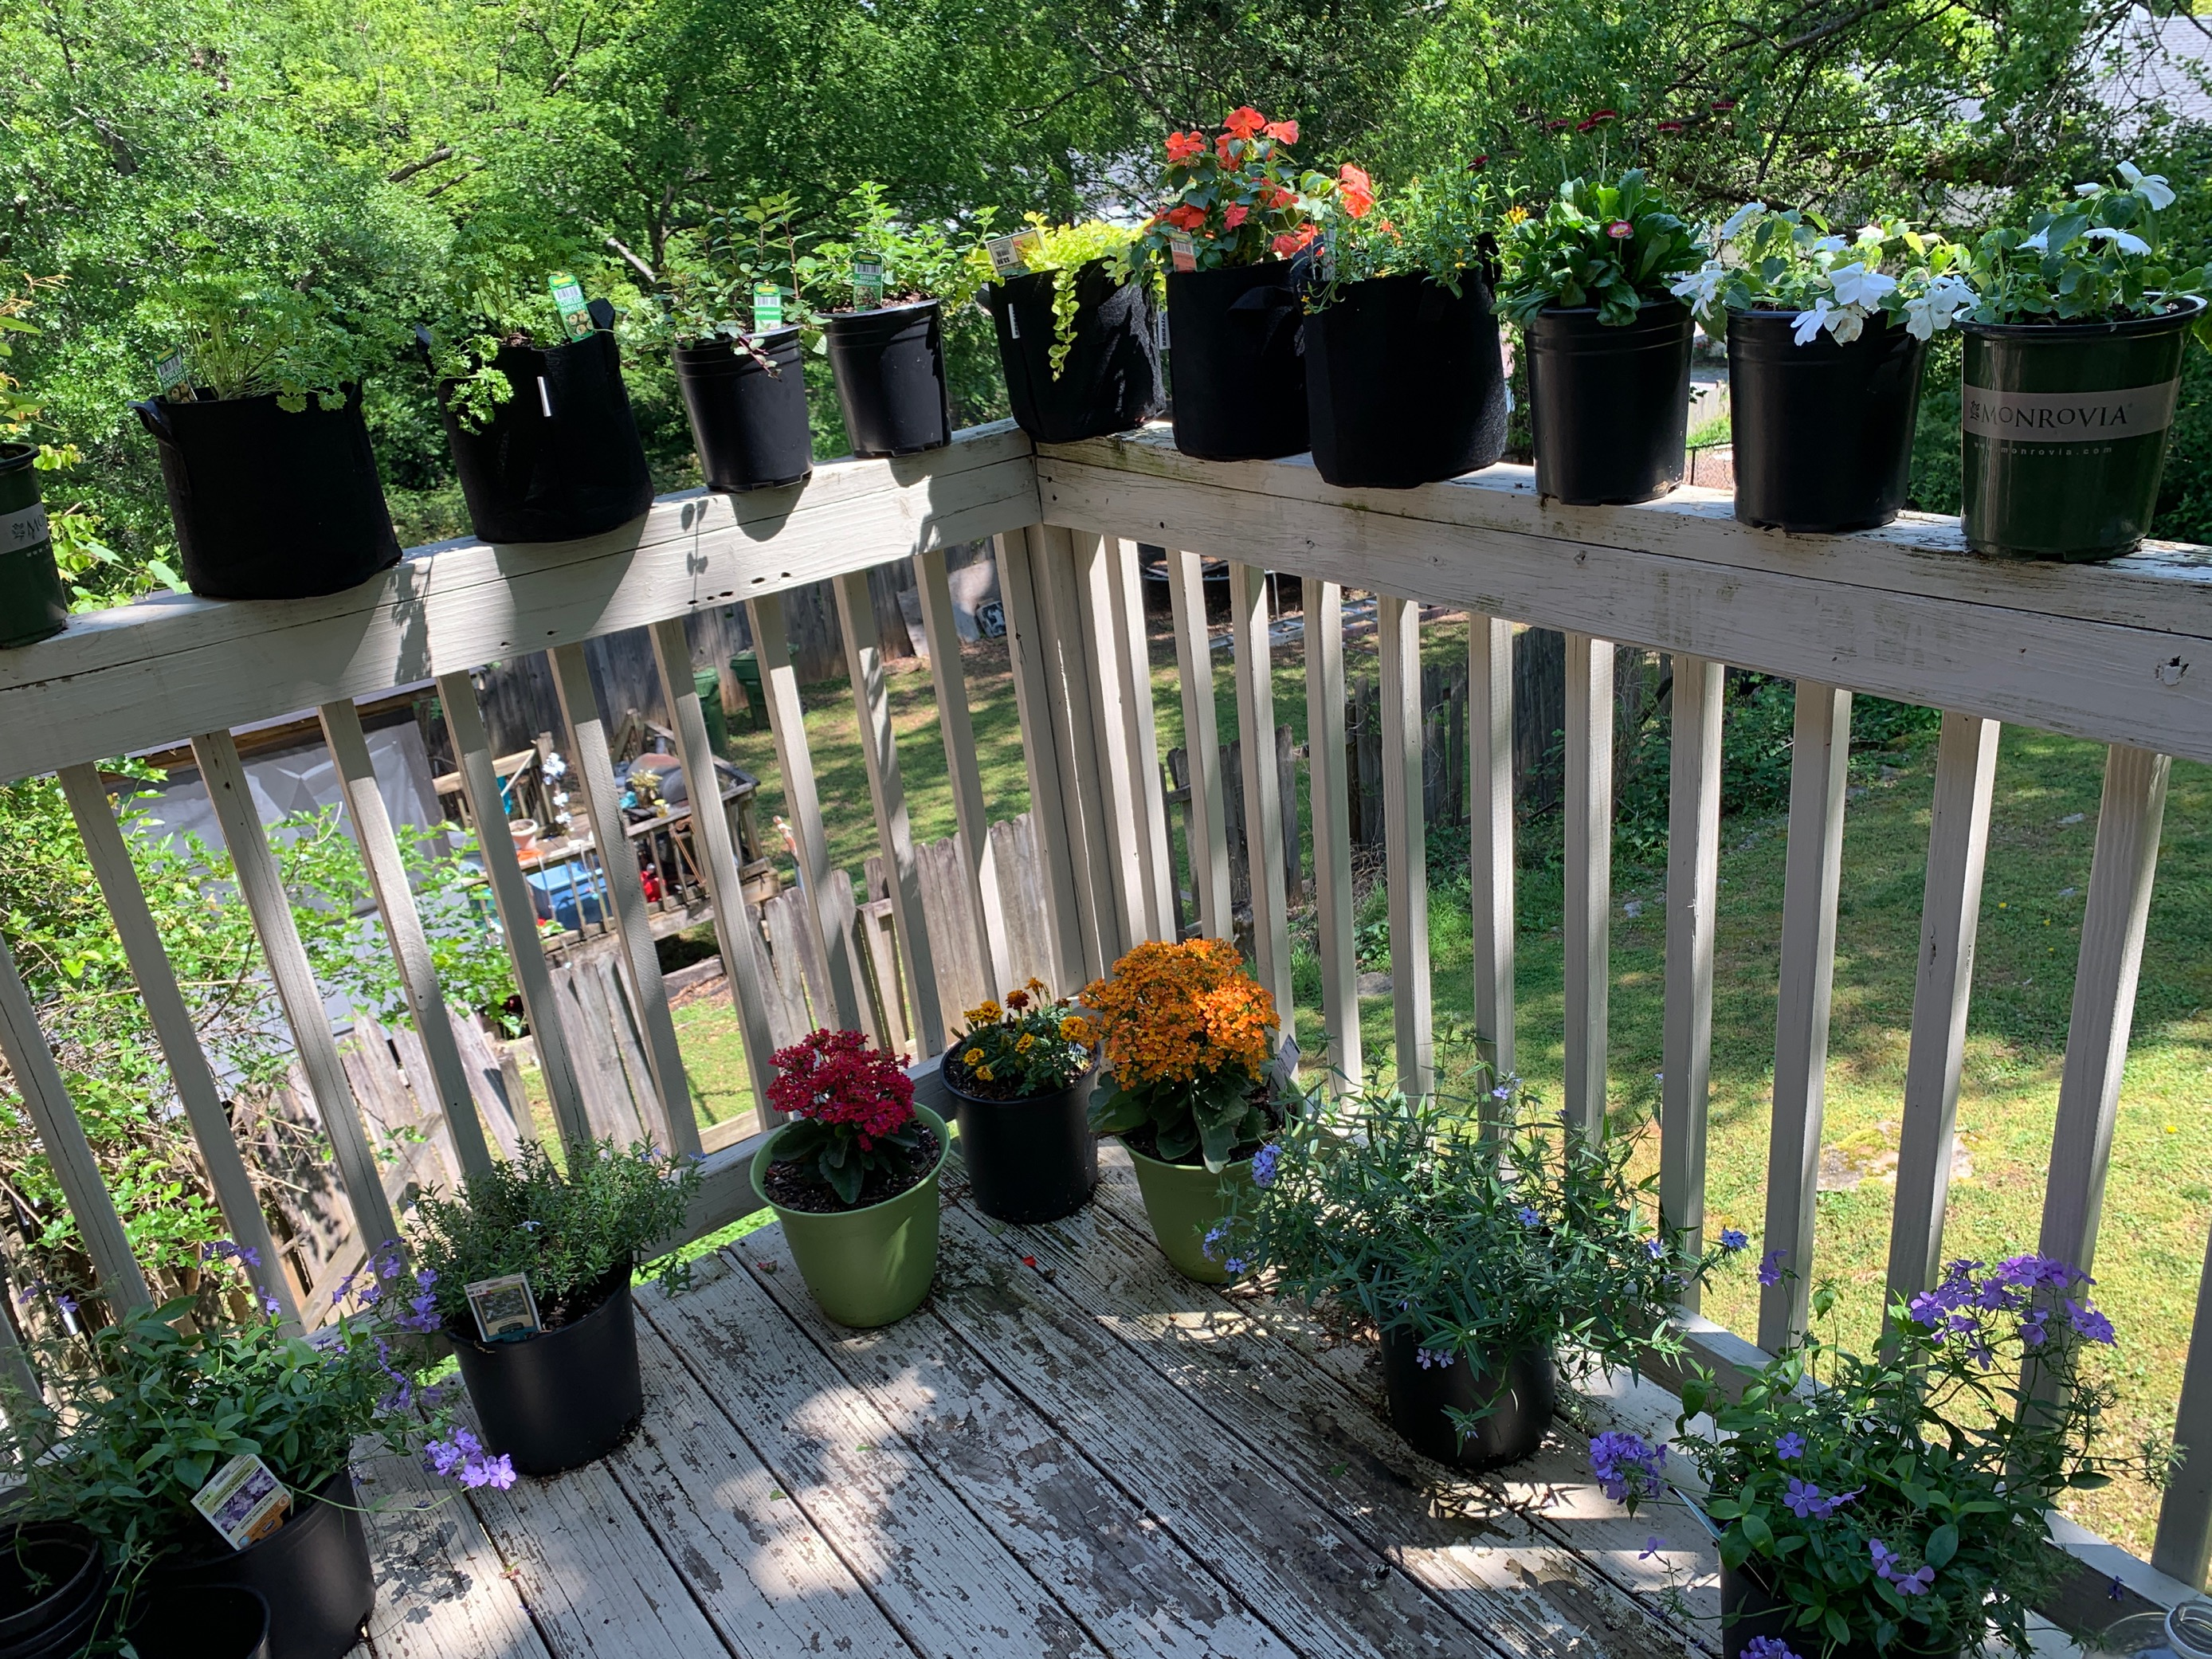 View from a balcony with many pot plants